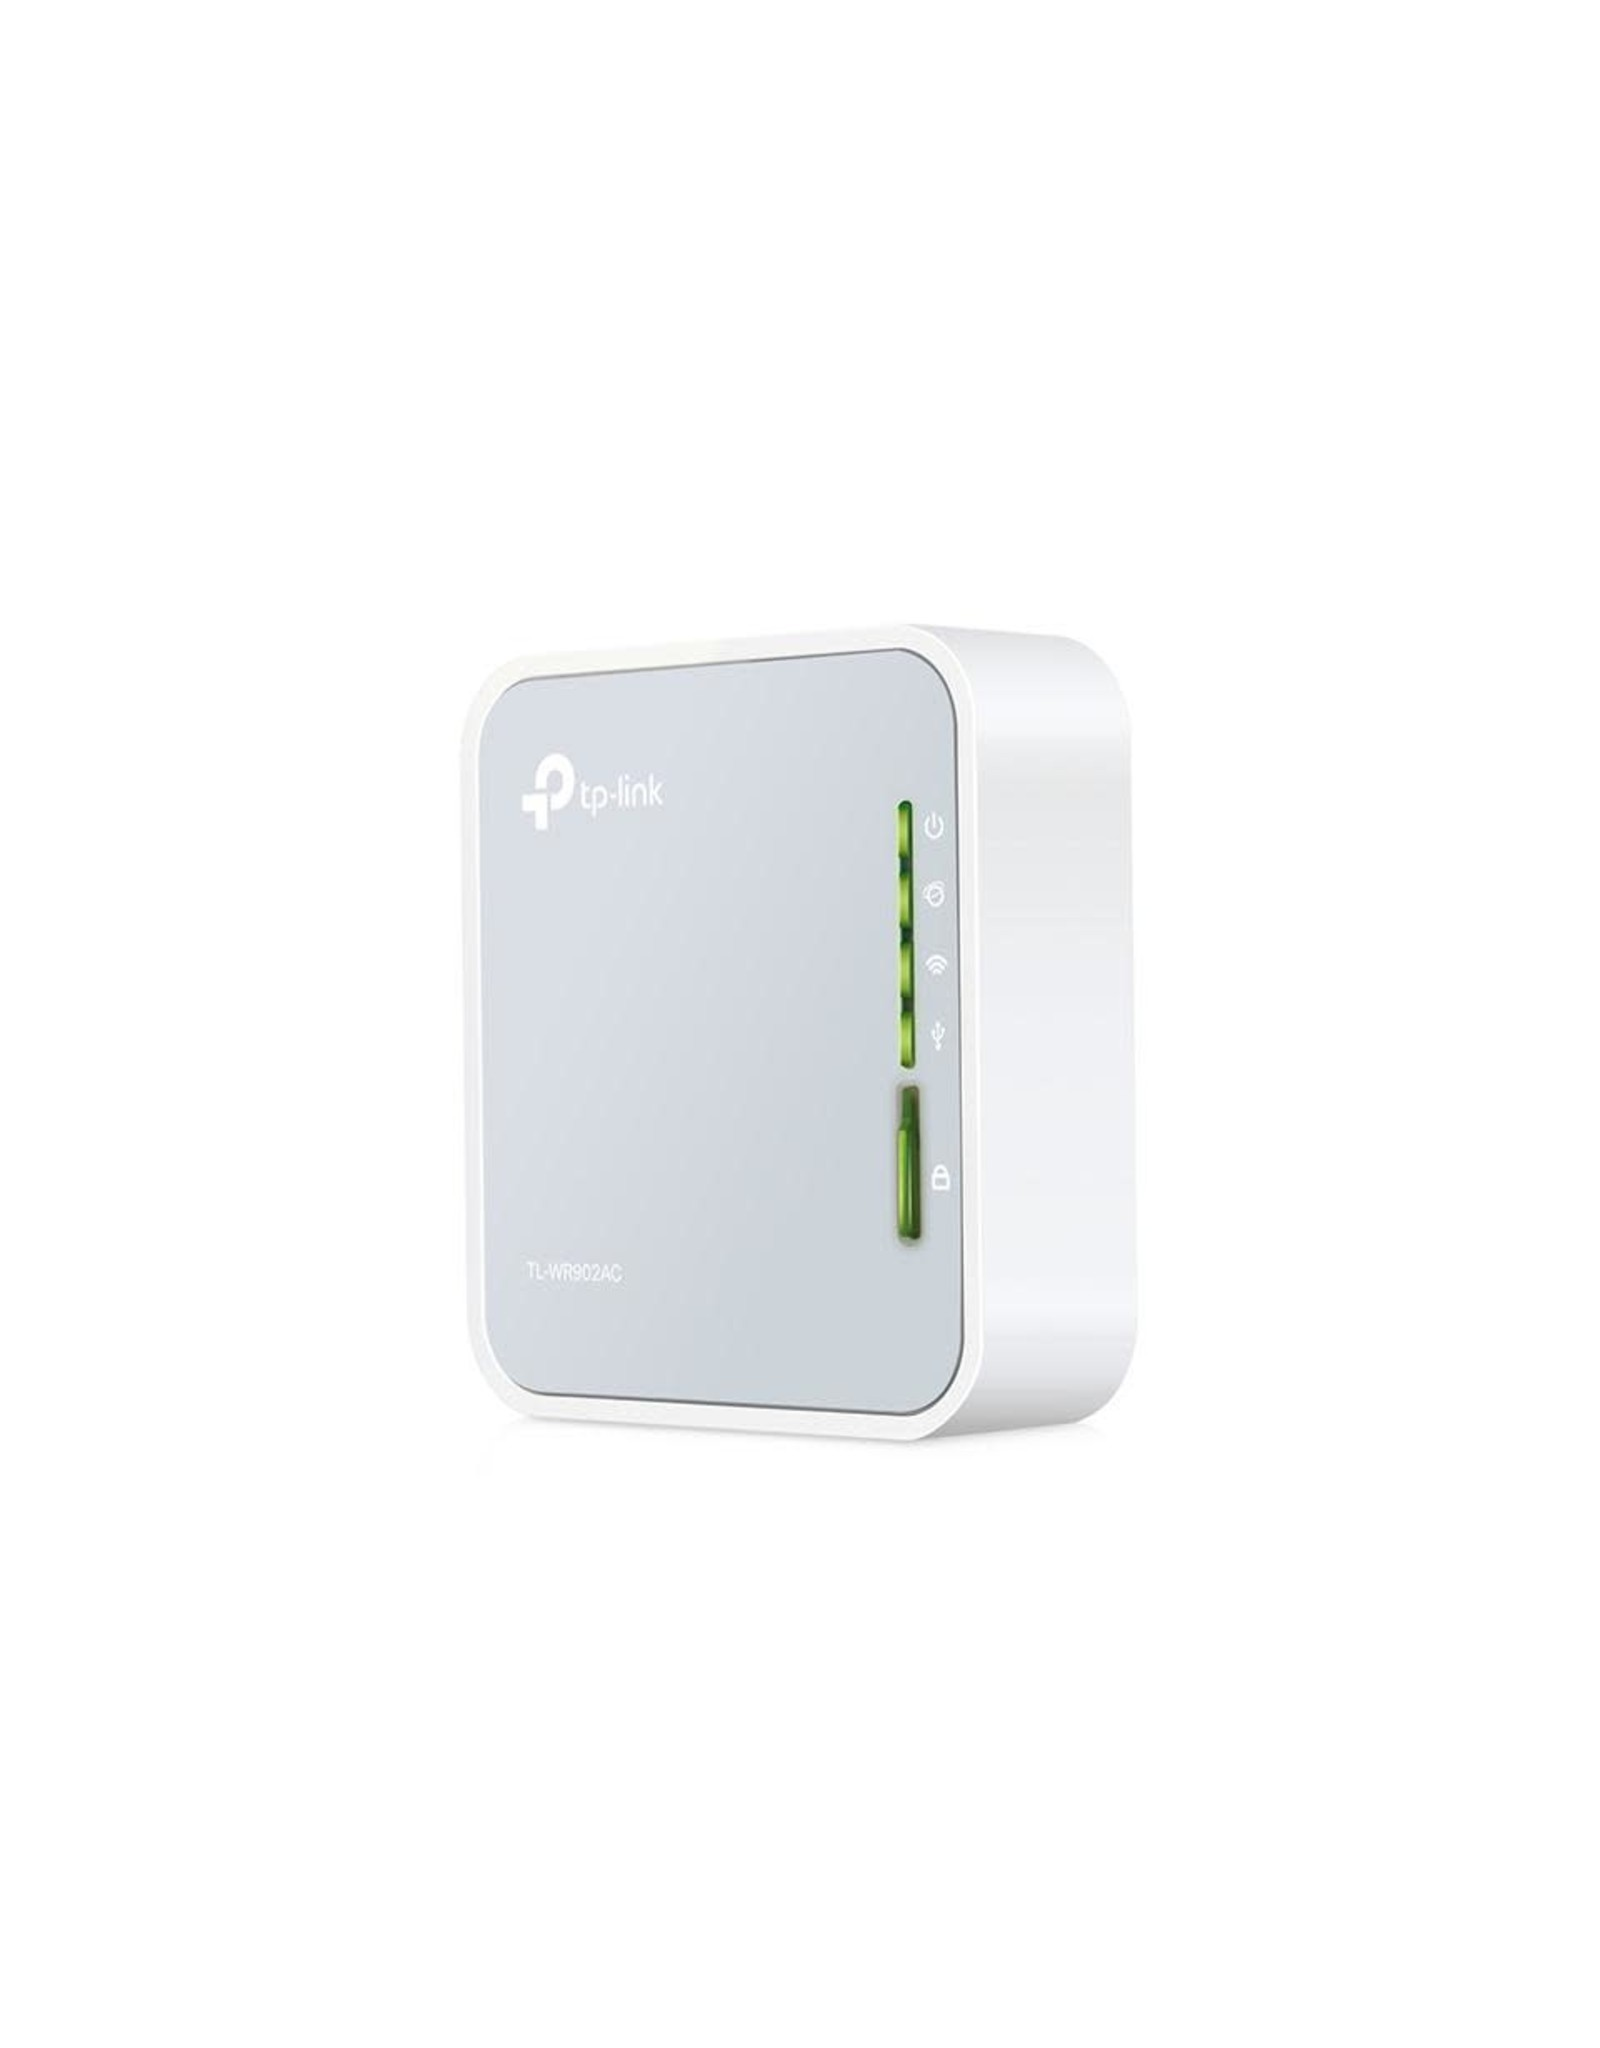 TP-Link TP-Link AC750 Mini Pocket Wi-Fi Router